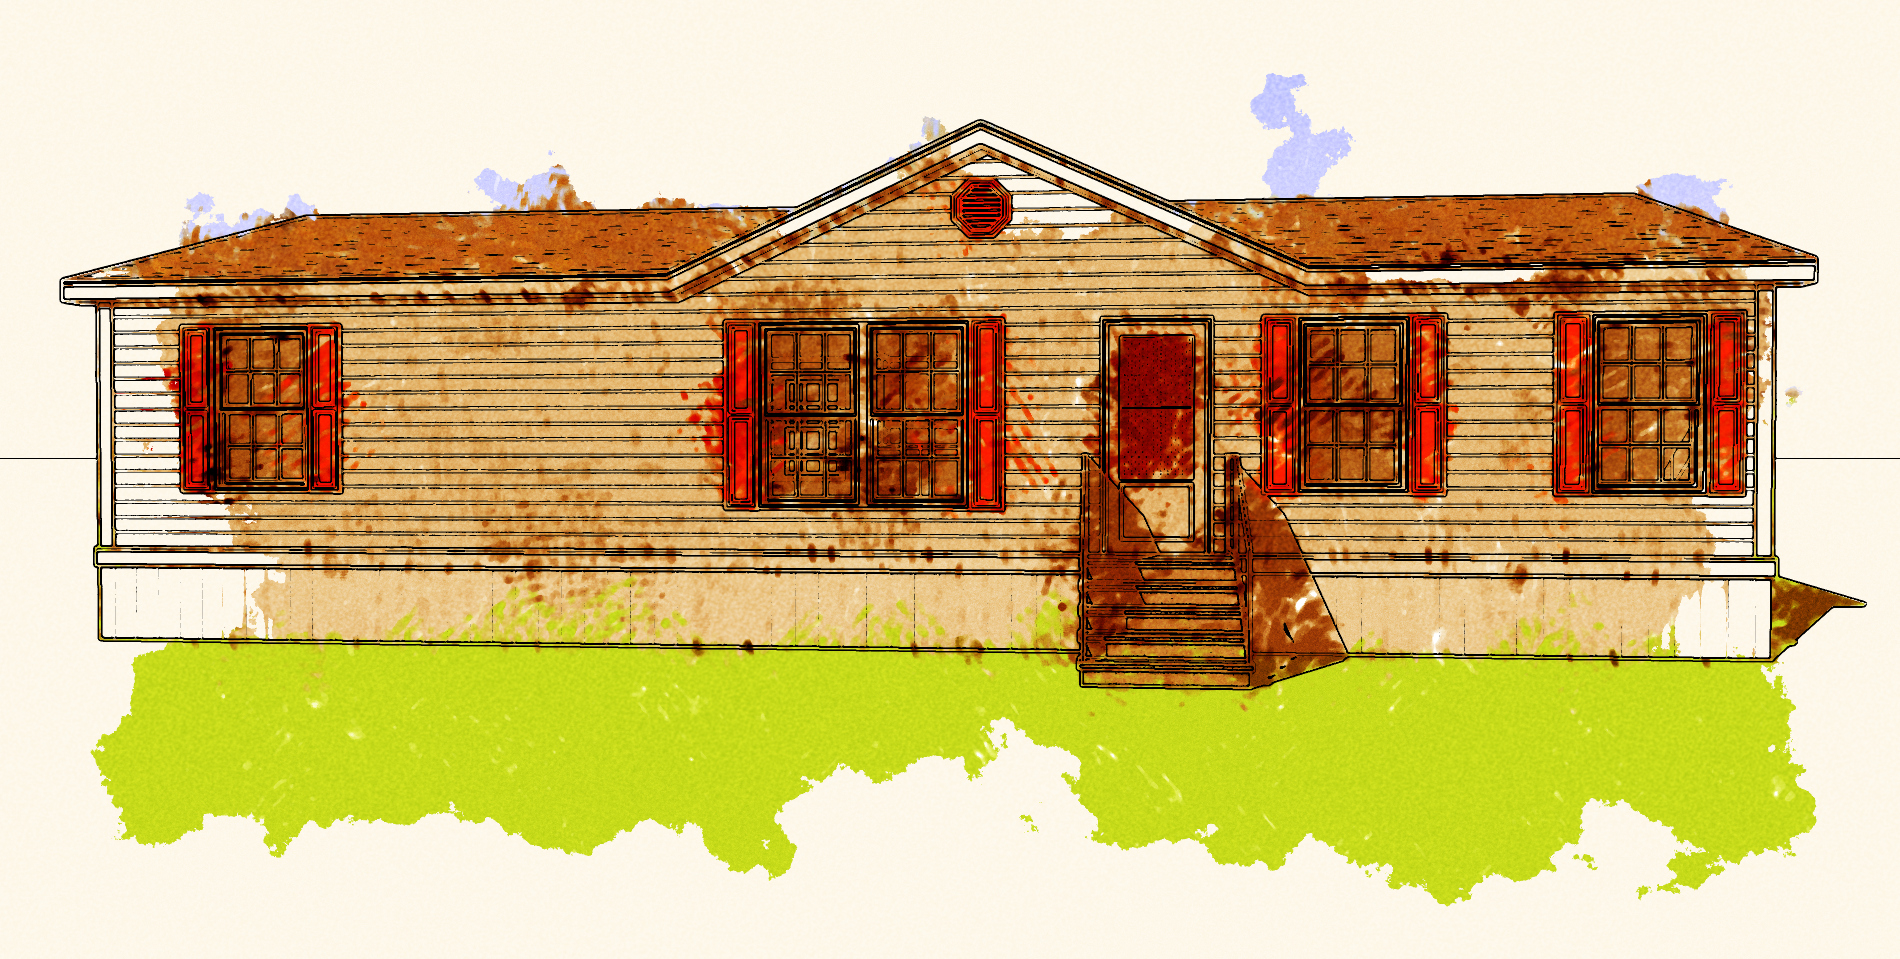 mobile home art - tan double wide manufactured home drawing in color - sketch